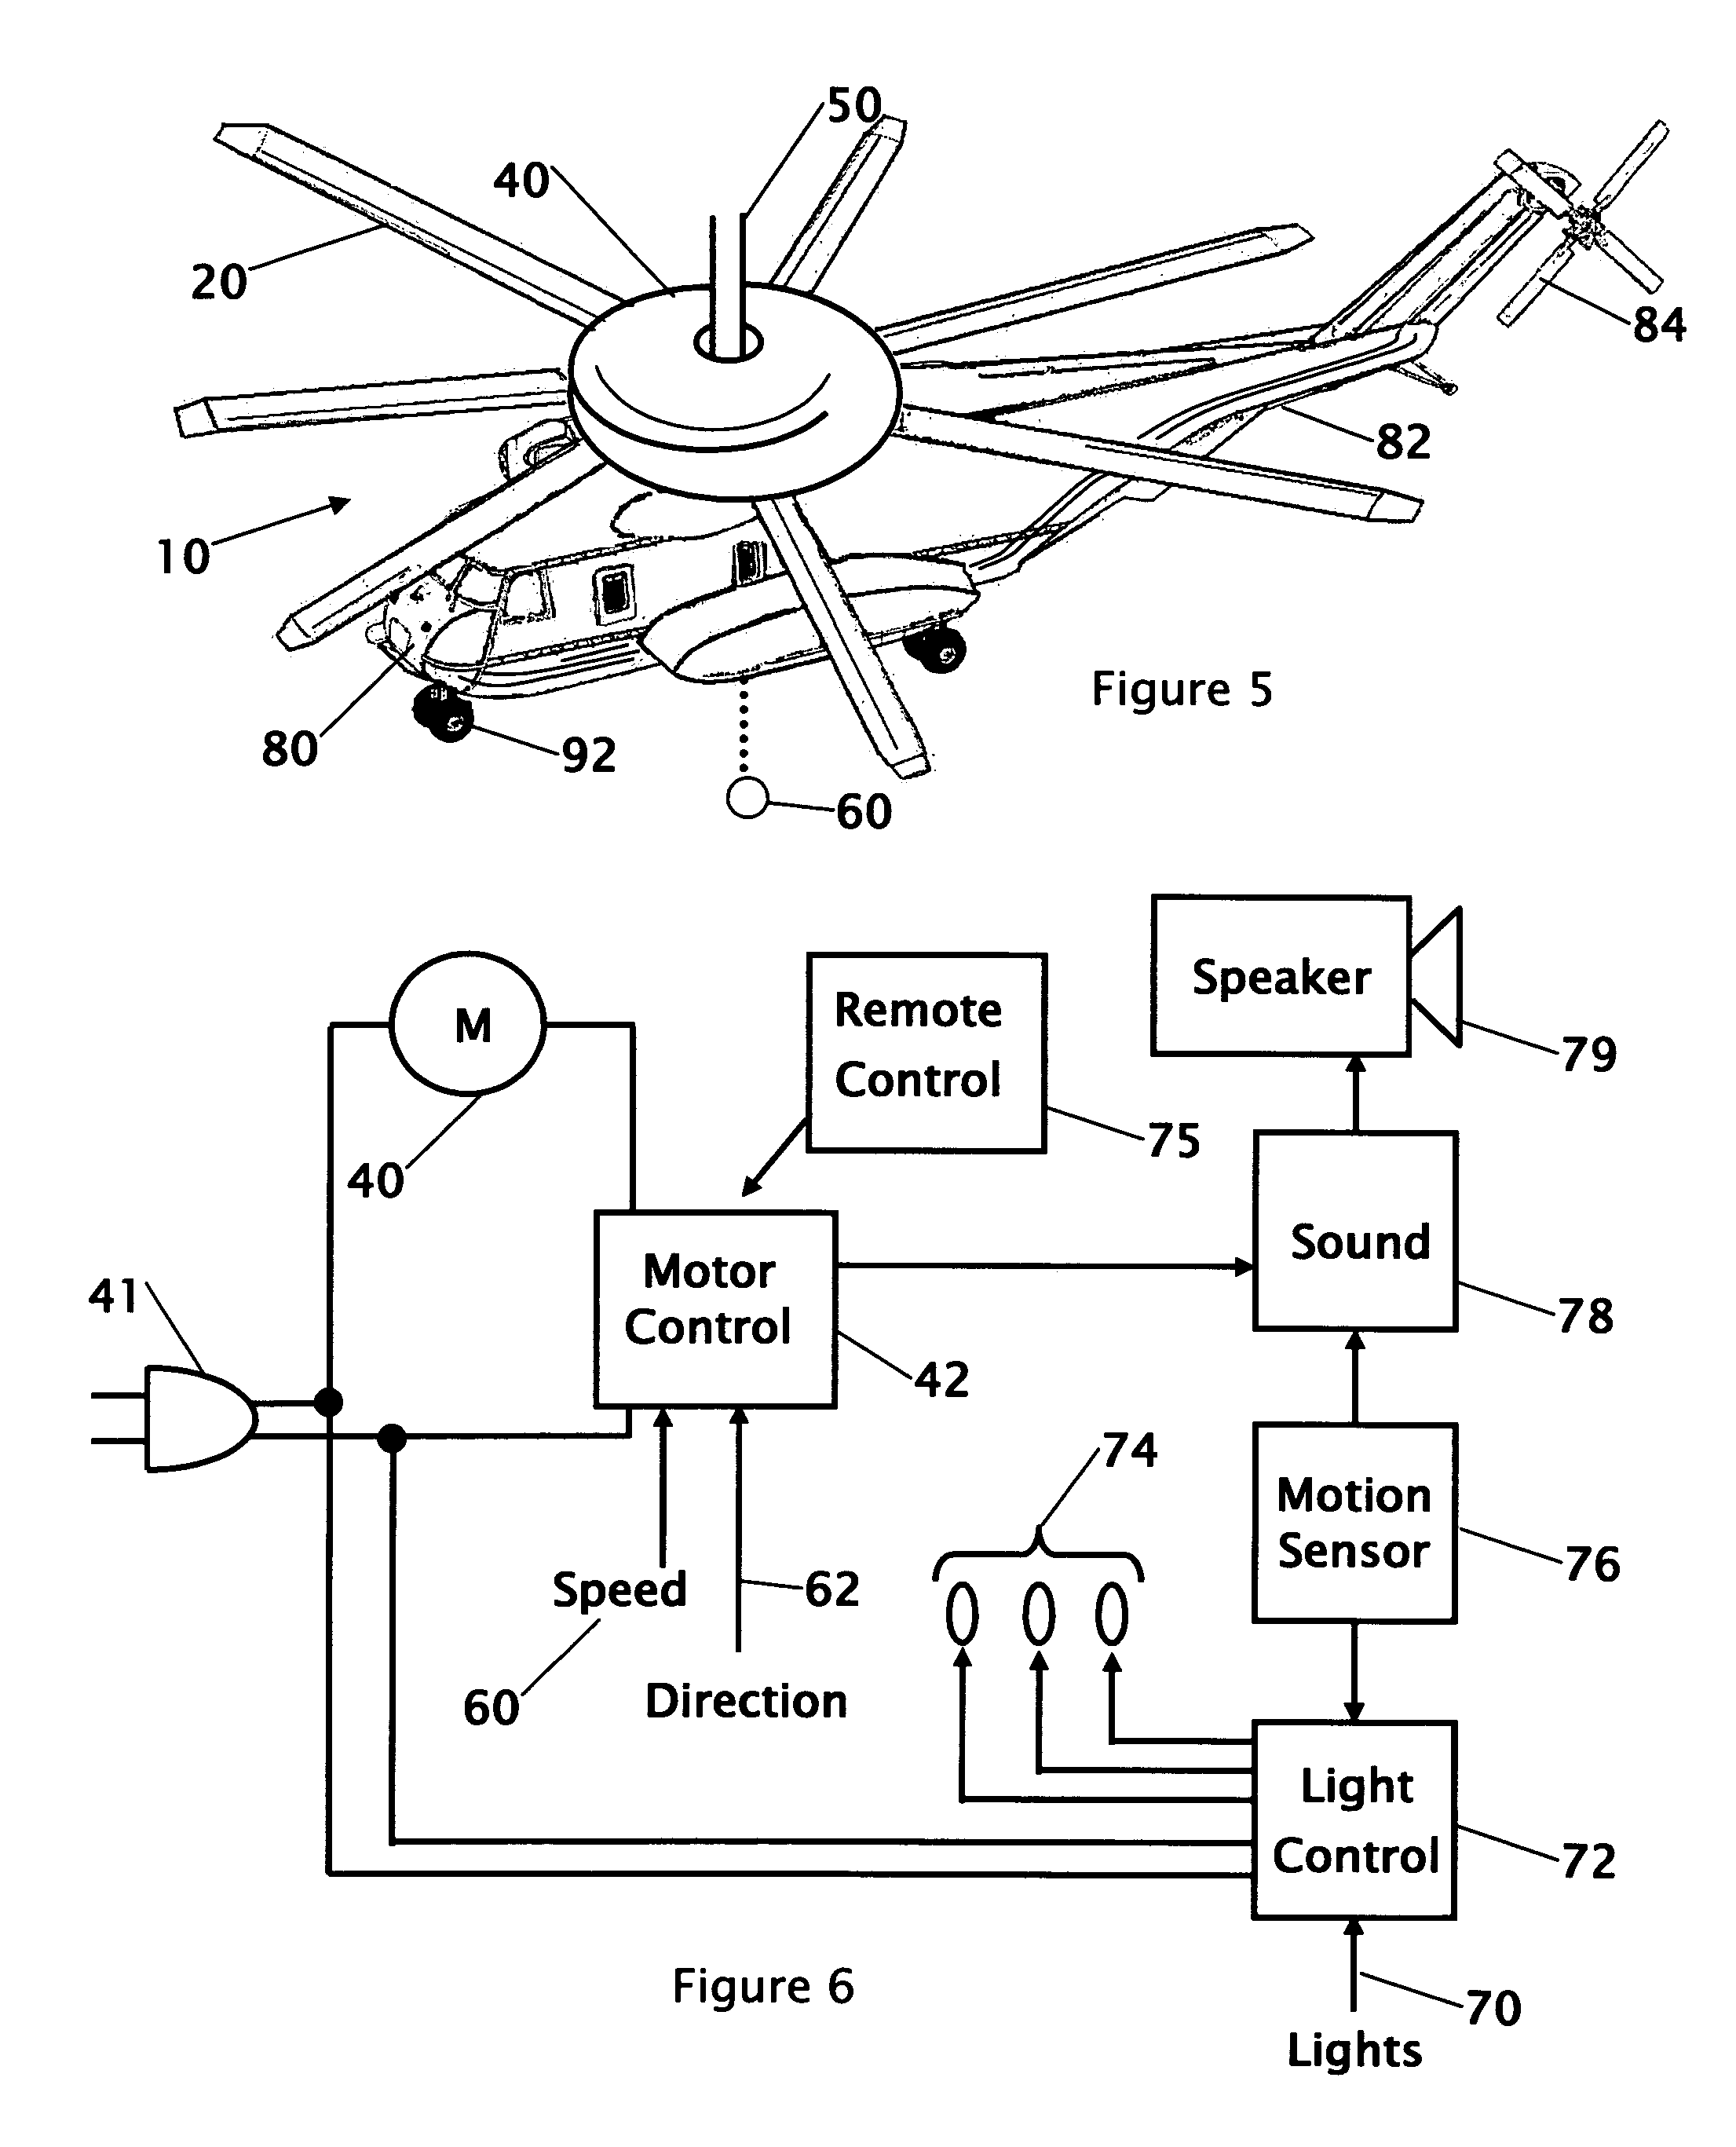 US07385528 20080610 D00003 patent us7385528 combination ceiling fan with light and sound ceiling fan internal wiring diagram at bakdesigns.co